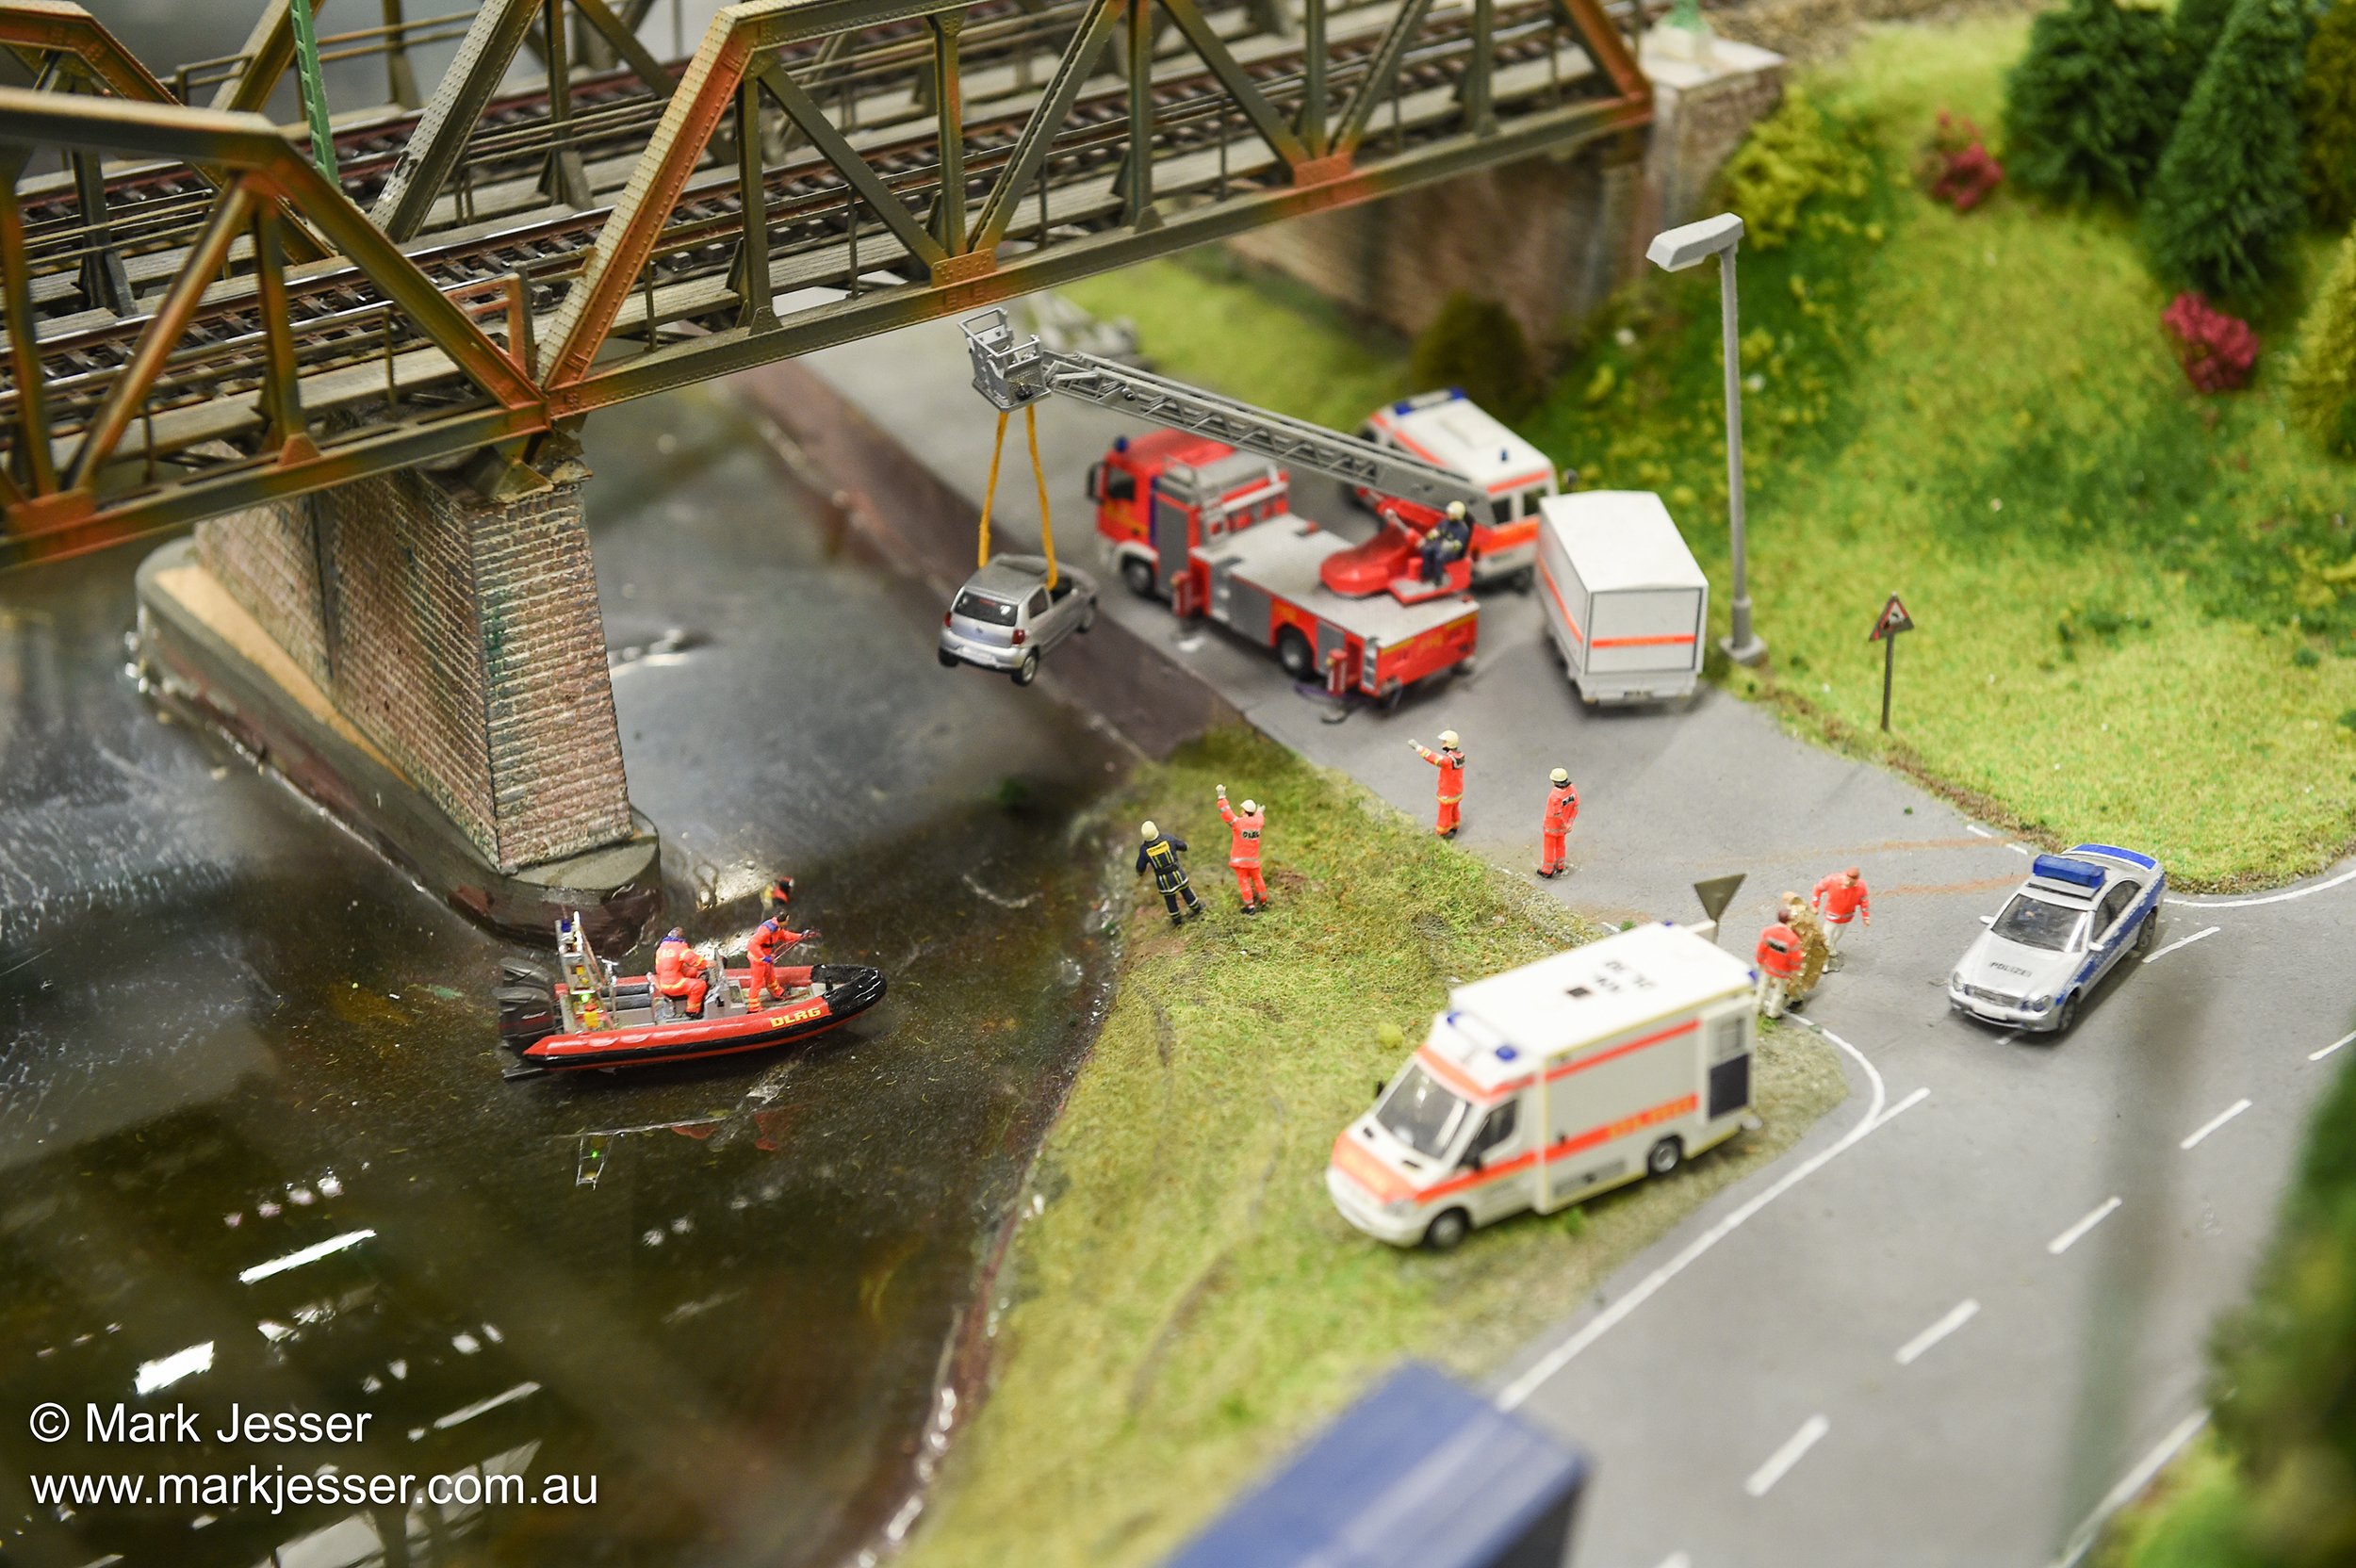 (Photo Mark Jesser) Hamburg, Germany. Miniature Wunderland.